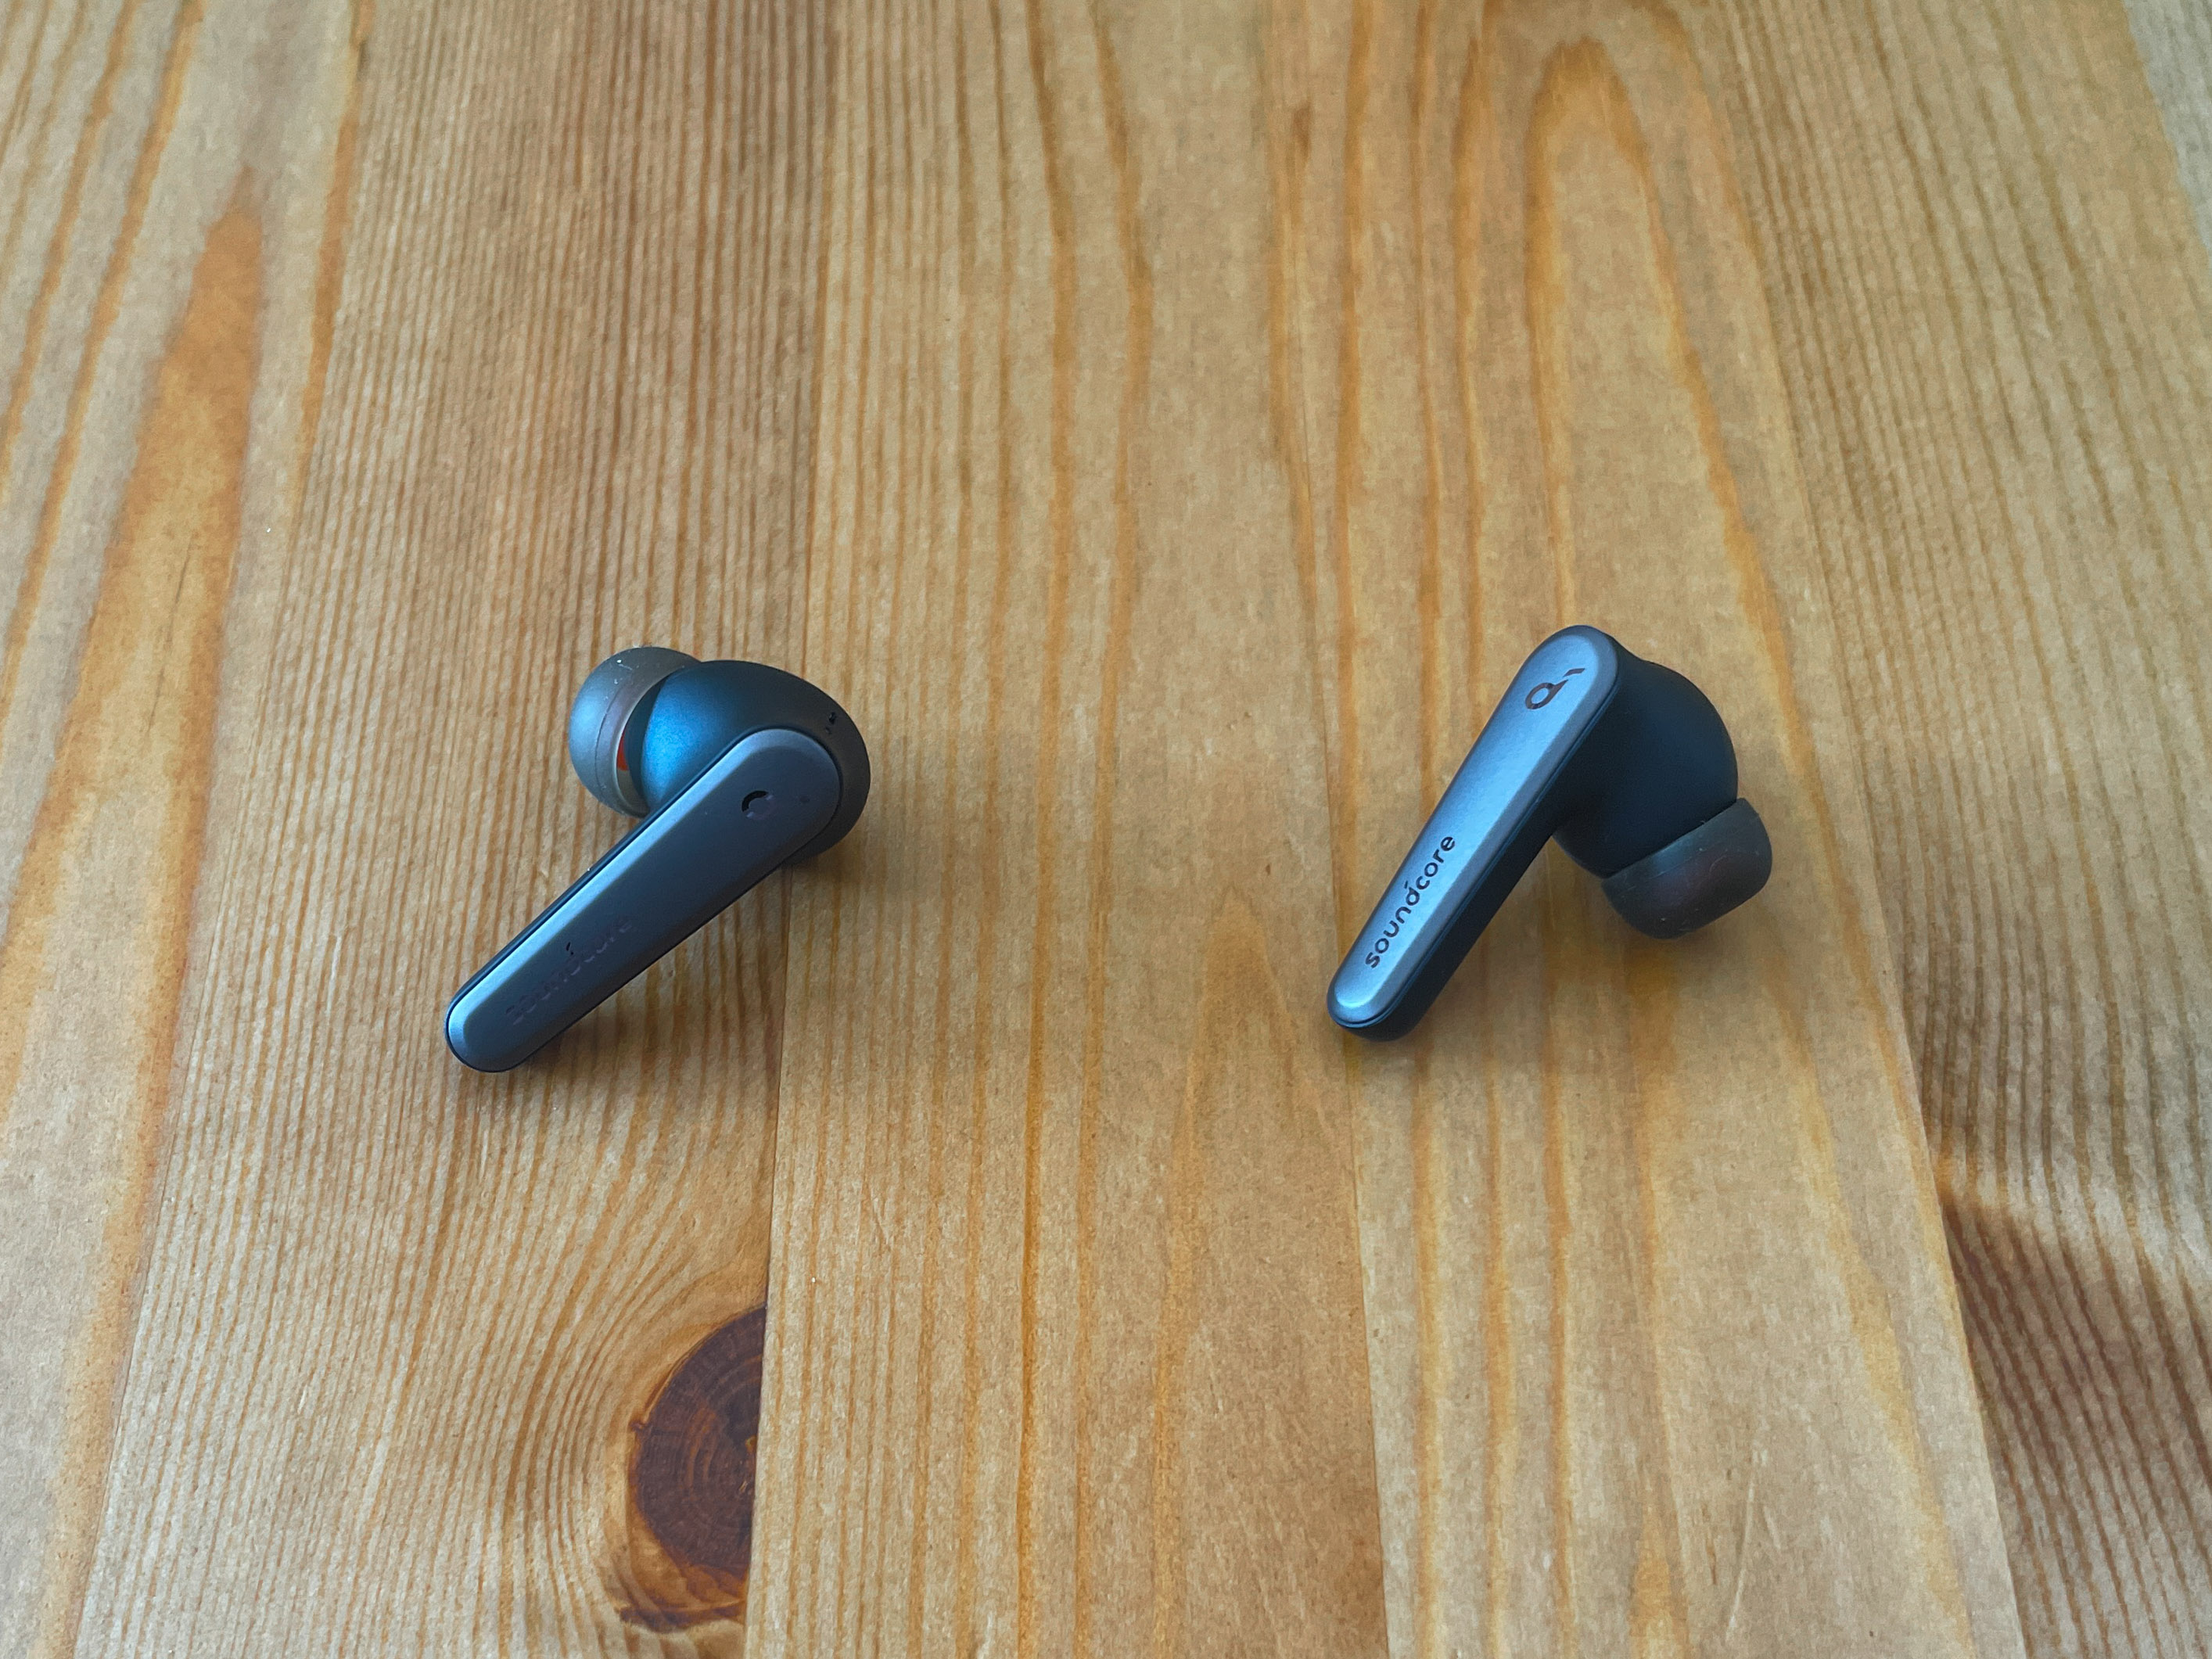 Anker Liberty Air 2 Pro im Test: Preiswerte Alternative zu Airpods Pro klingt toll - Ankers Liberty Air 2 Pro (Bild: Ingo Pakalski/Golem.de)